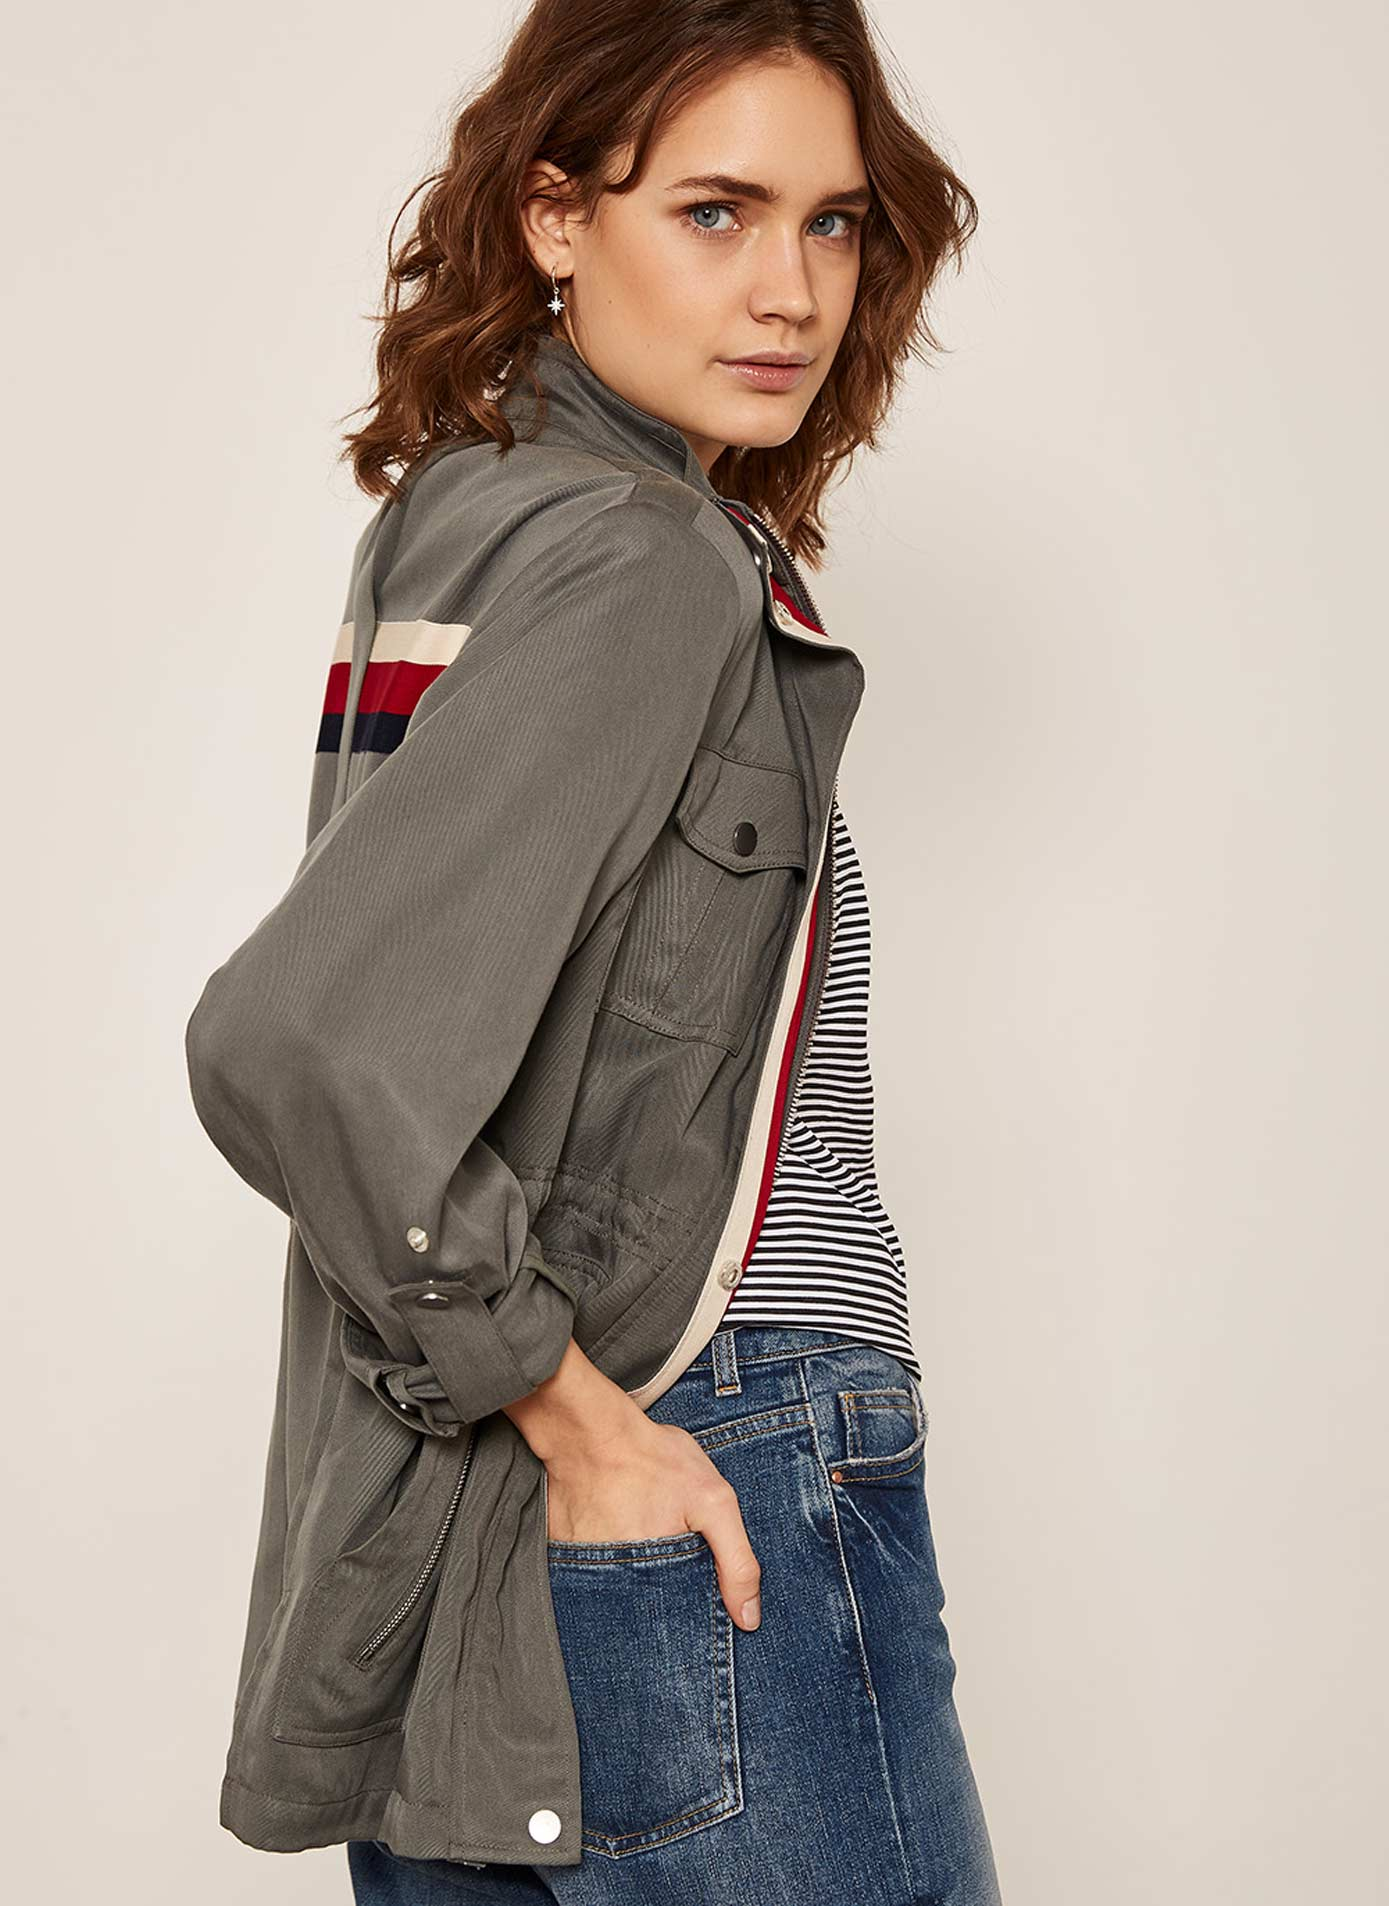 Mint Velvet Khaki Striped 4 pocket Jacket £129